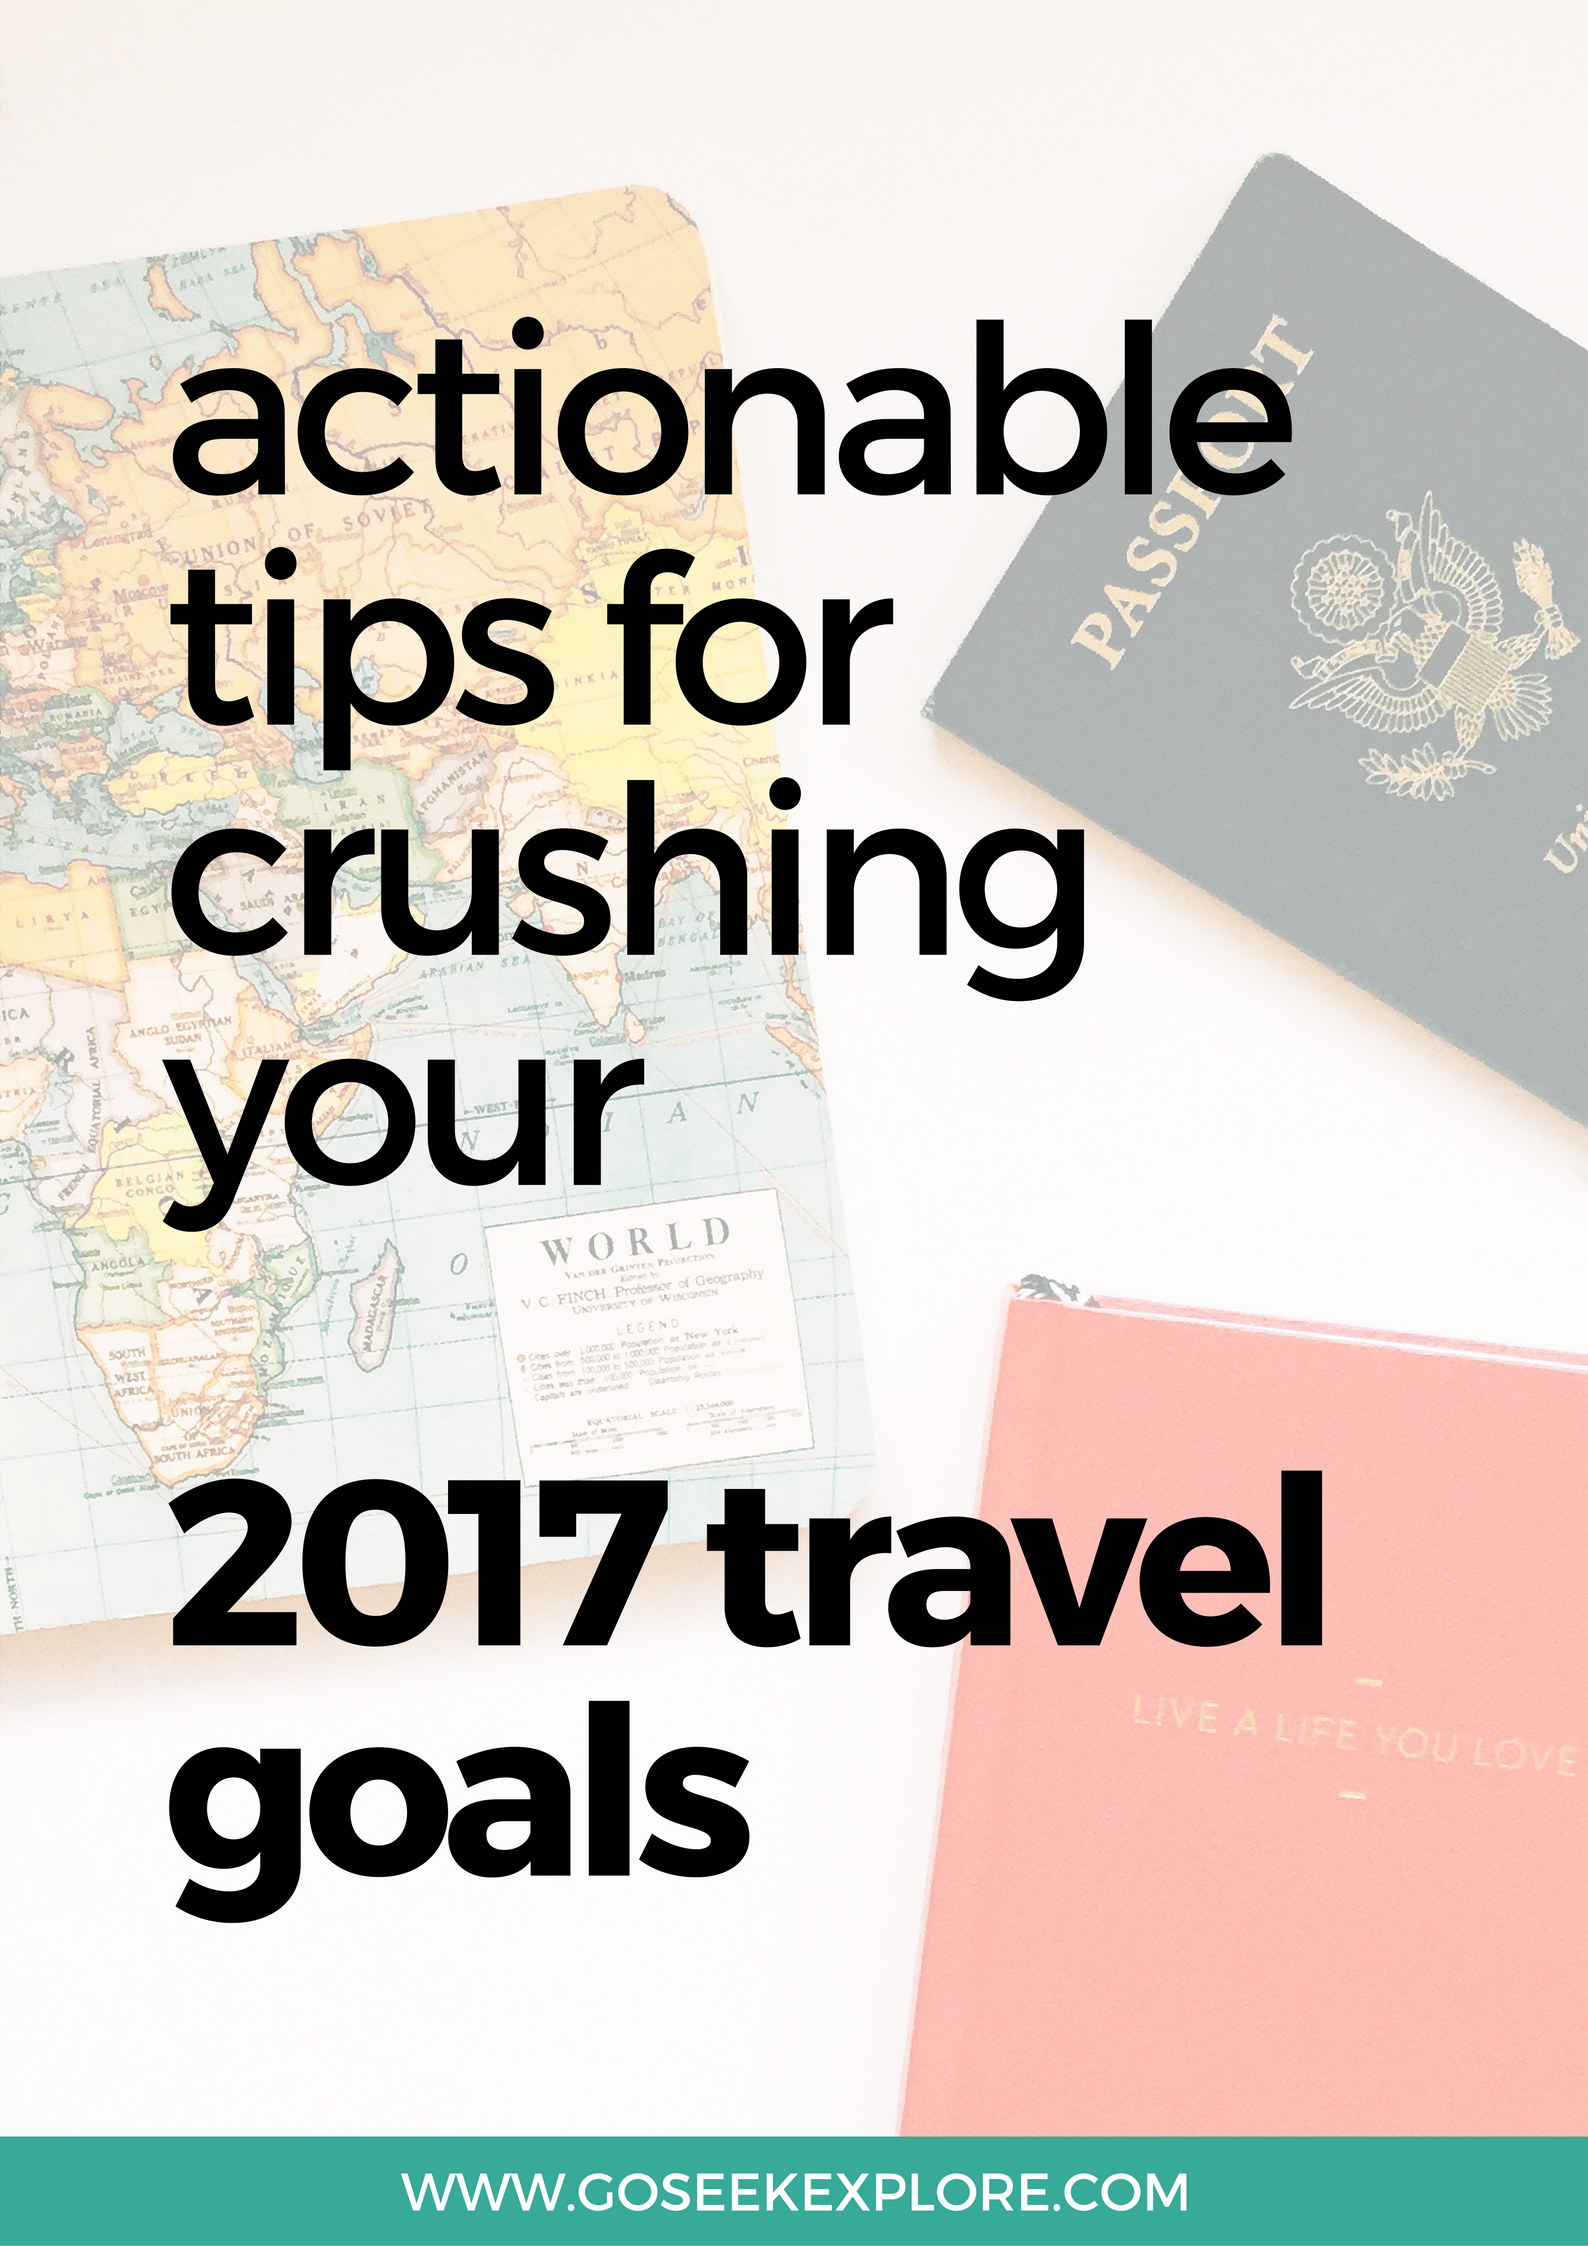 How to crush your 2017 goals, starting NOW! Actionable tips for traveling, working abroad, or being a digital nomad in 2017